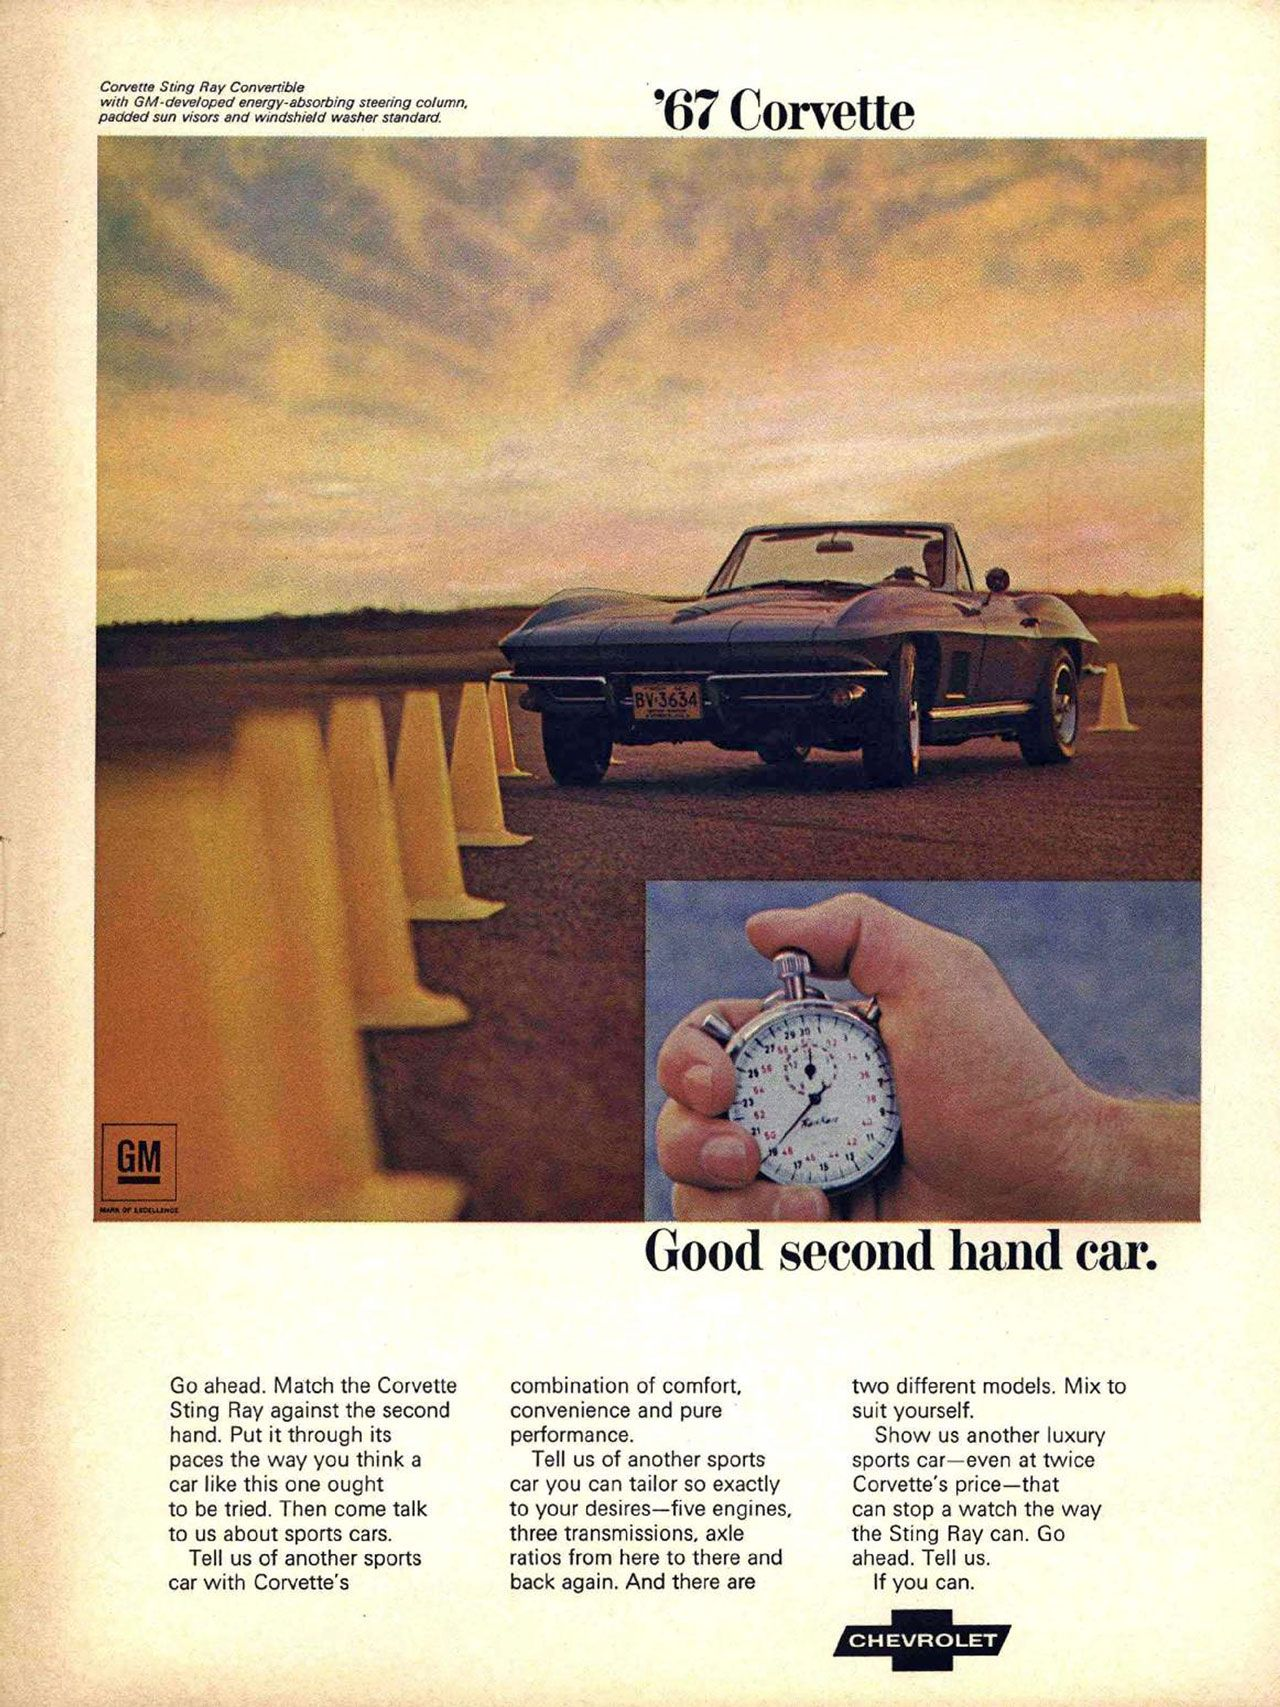 The 1967 Chevrolet Corvette Stingray Convertible. Good second hand car. CONS. Sting Ray Convertible with GM-developed energy-absorbing steering column, padded sun visors and windshield washer standard '67 Corvette Go ahead. Match the Corvette Sting Ray against the second hand. Put it through its paces the way you think a car like this one ought to be tried. Then come talk to us about sports cars. Tell us of another sports car with Corvette's Good second hand car. combination of comfort, convenience and pure performance. Tell us of another sports car you can tailor so exactly to your desires—five engines, three transmissions, axle ratios from here to there and back again. And there are two different models. Mix to suit yourself. Show us another luxury sports car—even at twice Corvette's price—that can stop a watch the way the Sting Ray can. Go ahead. Tell us. If you can.